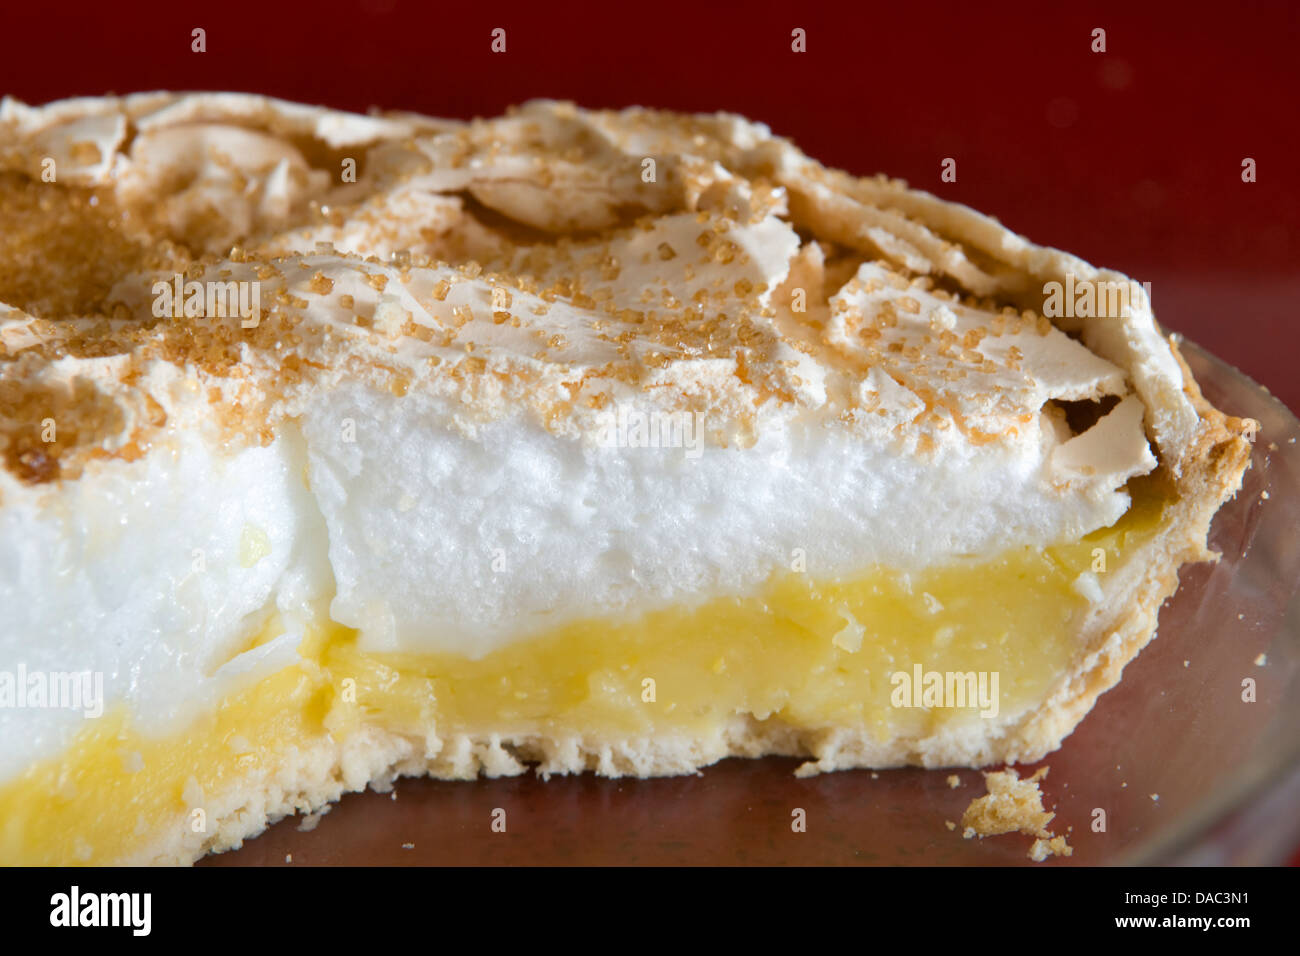 Home made lemon meringue pie in glass bowl on red worktop - Stock Image